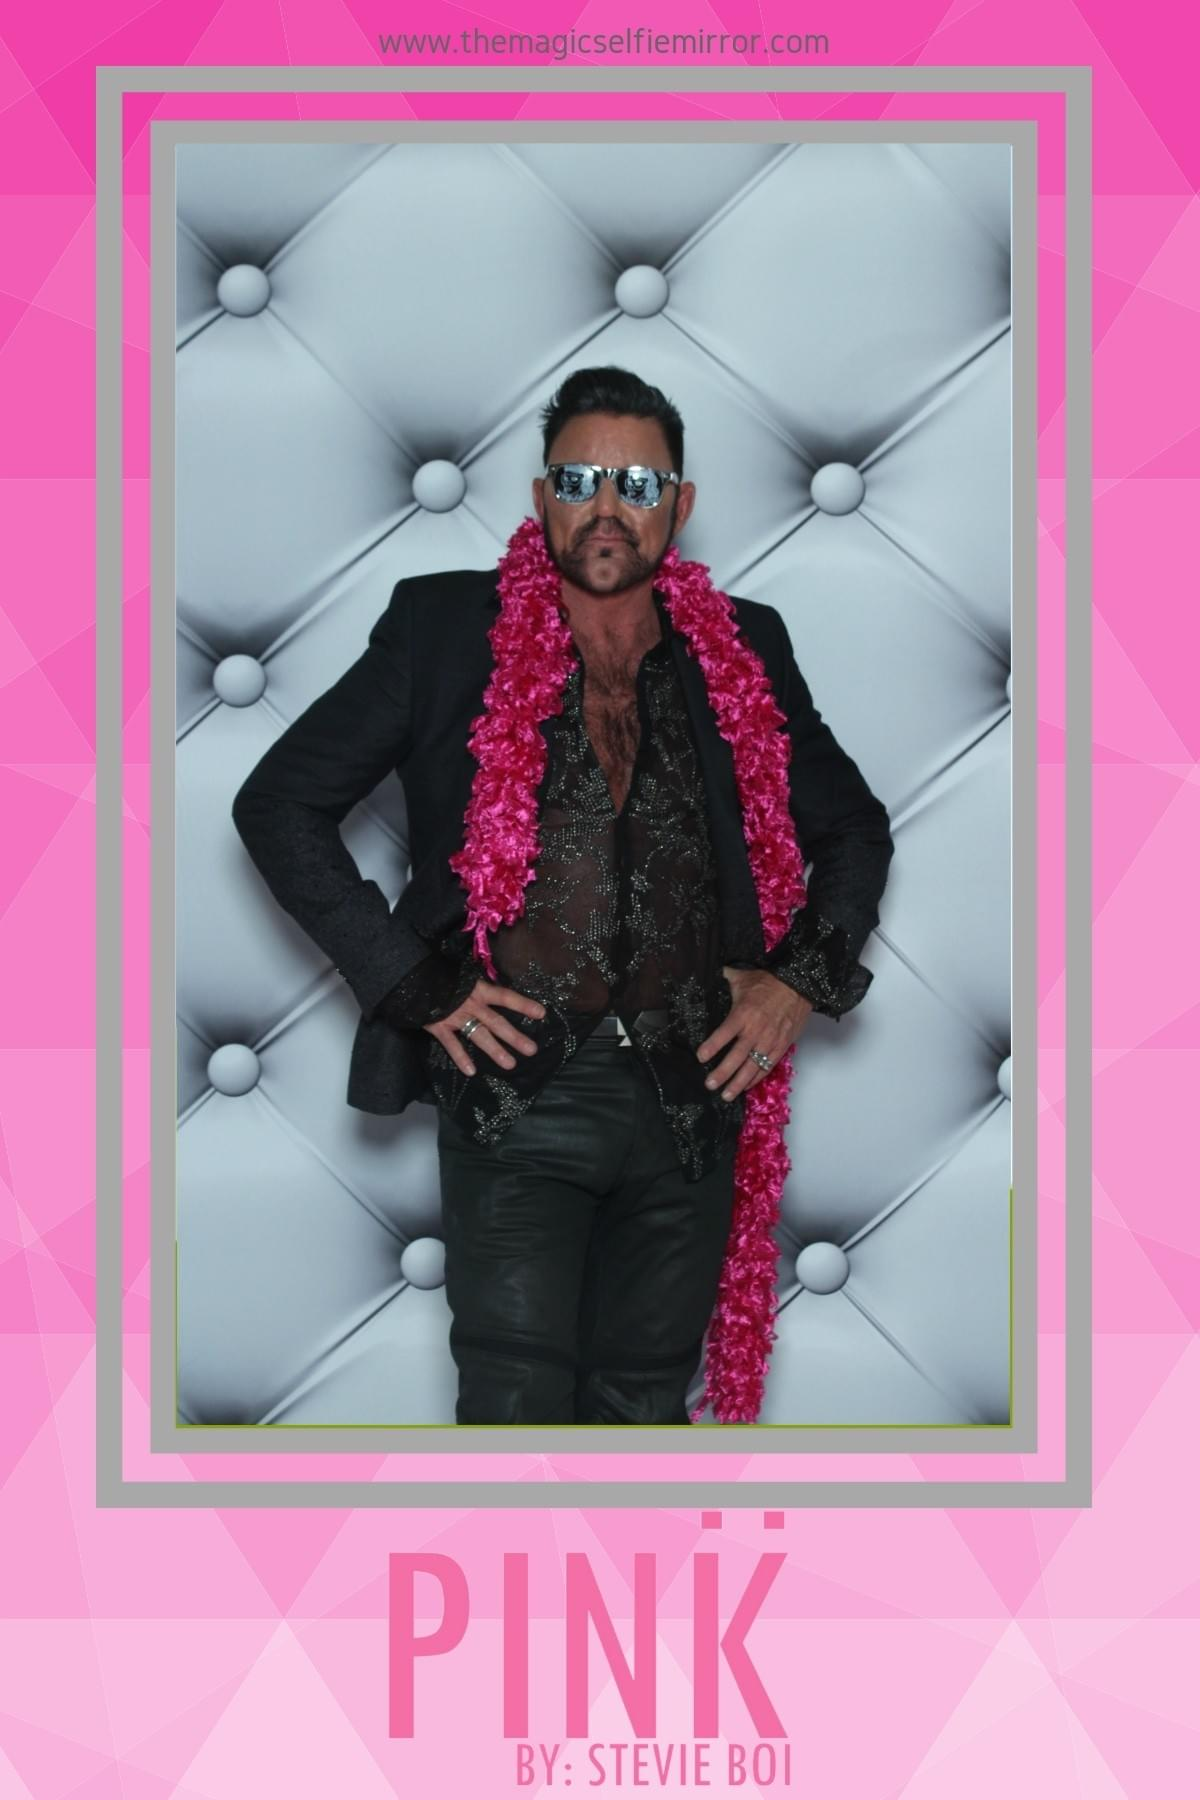 Founder of Phoenix Risen Studios - Logan Curtis with The Magic Selfie Mirror photo booth at New York Fashion Week